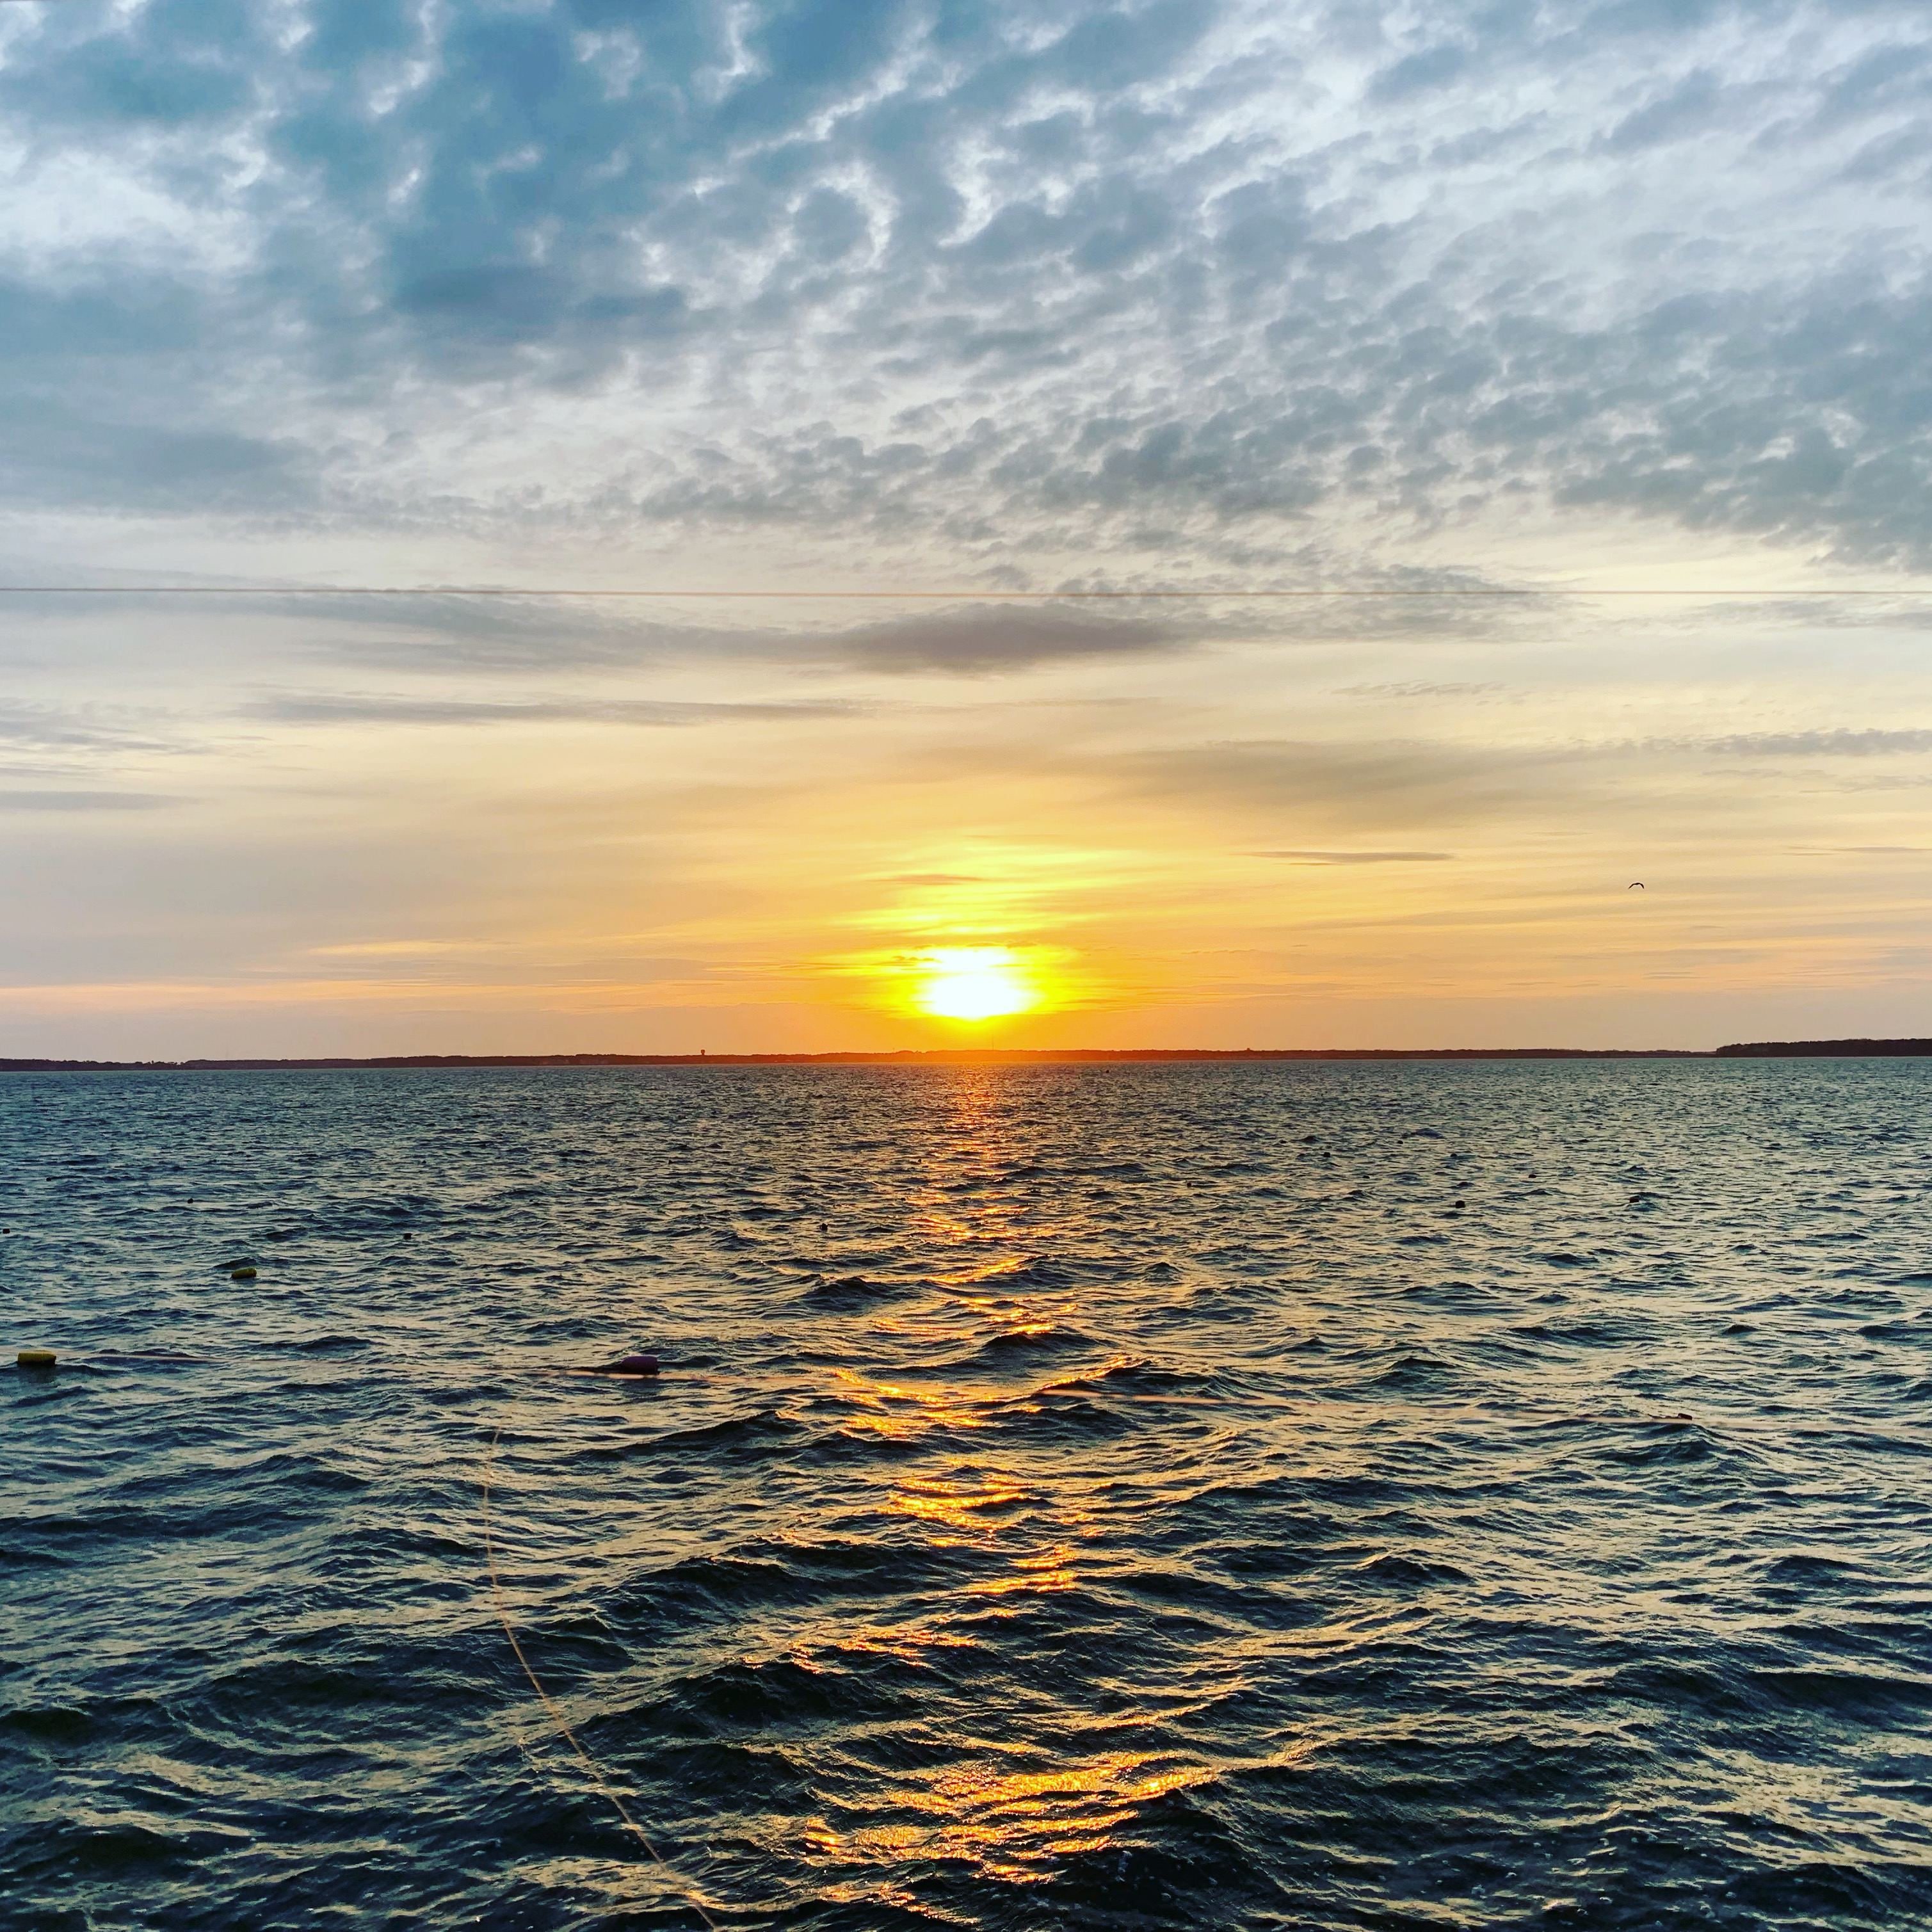 Isle of Wight Bay sunset in Ocean City, Maryland.